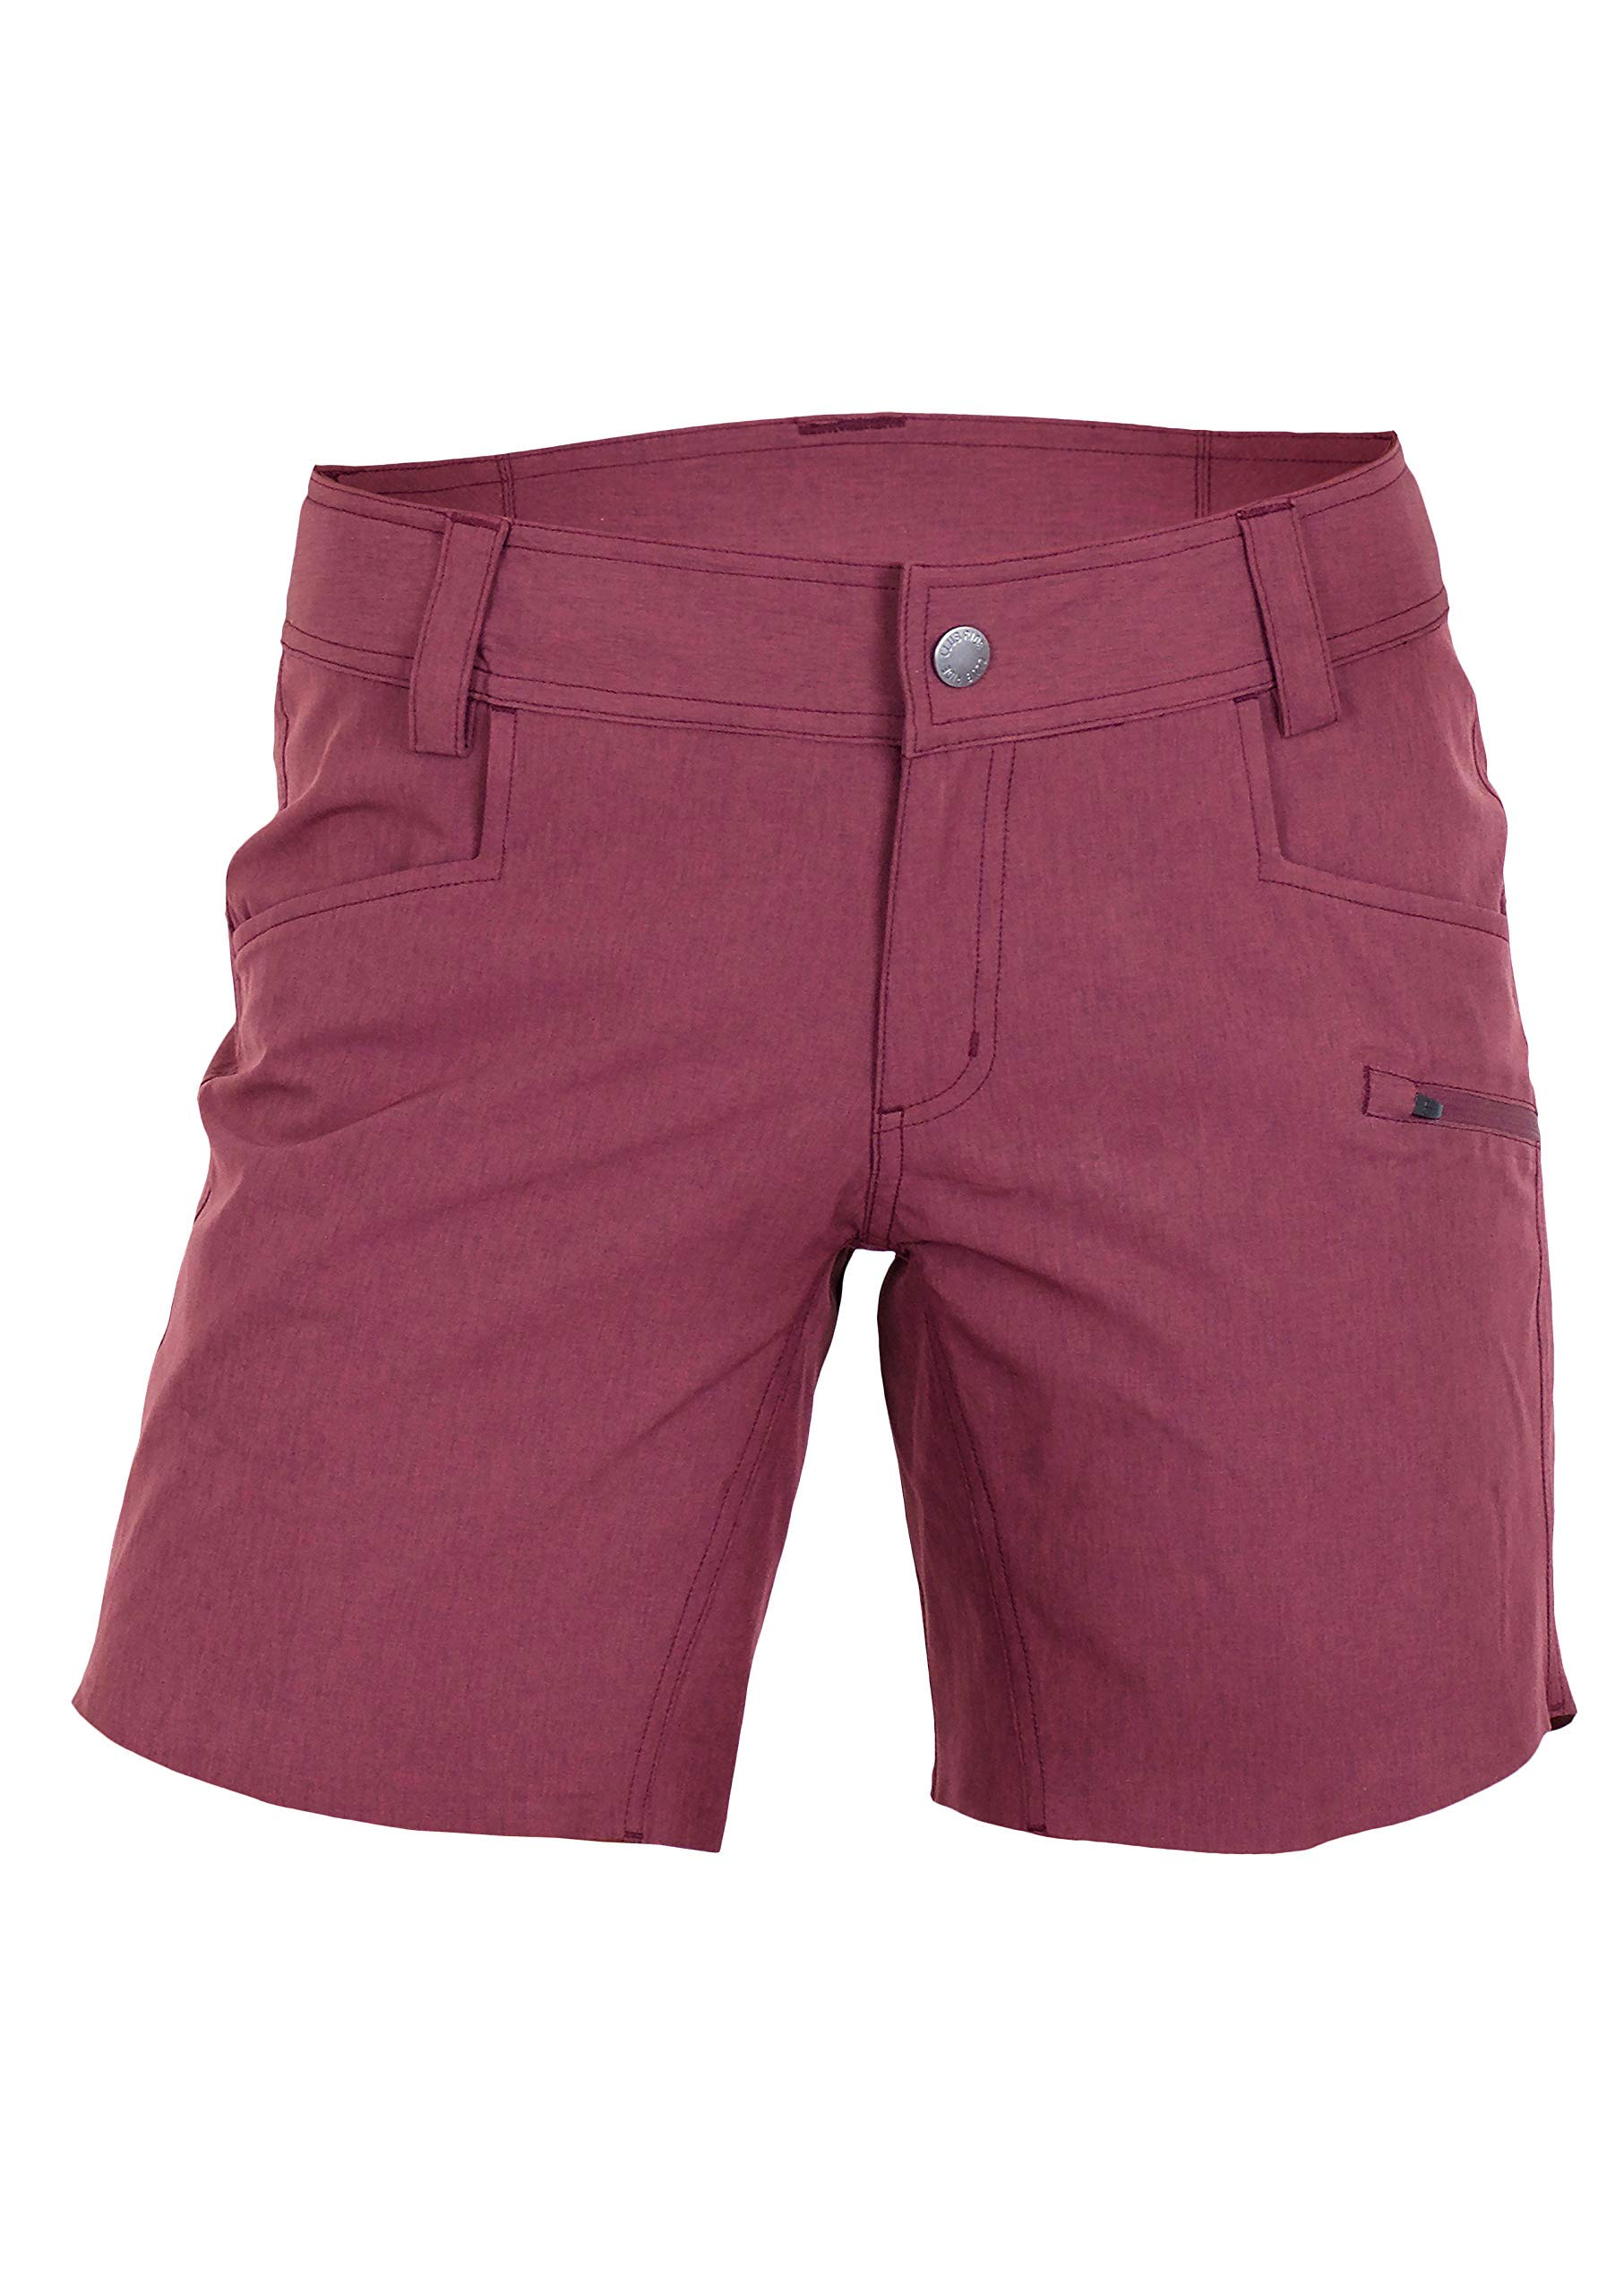 Club Ride Apparel Eden Cycling Short - Women's Biking Shorts with Removable Chamois Liner - Merlot - XS by Club Ride